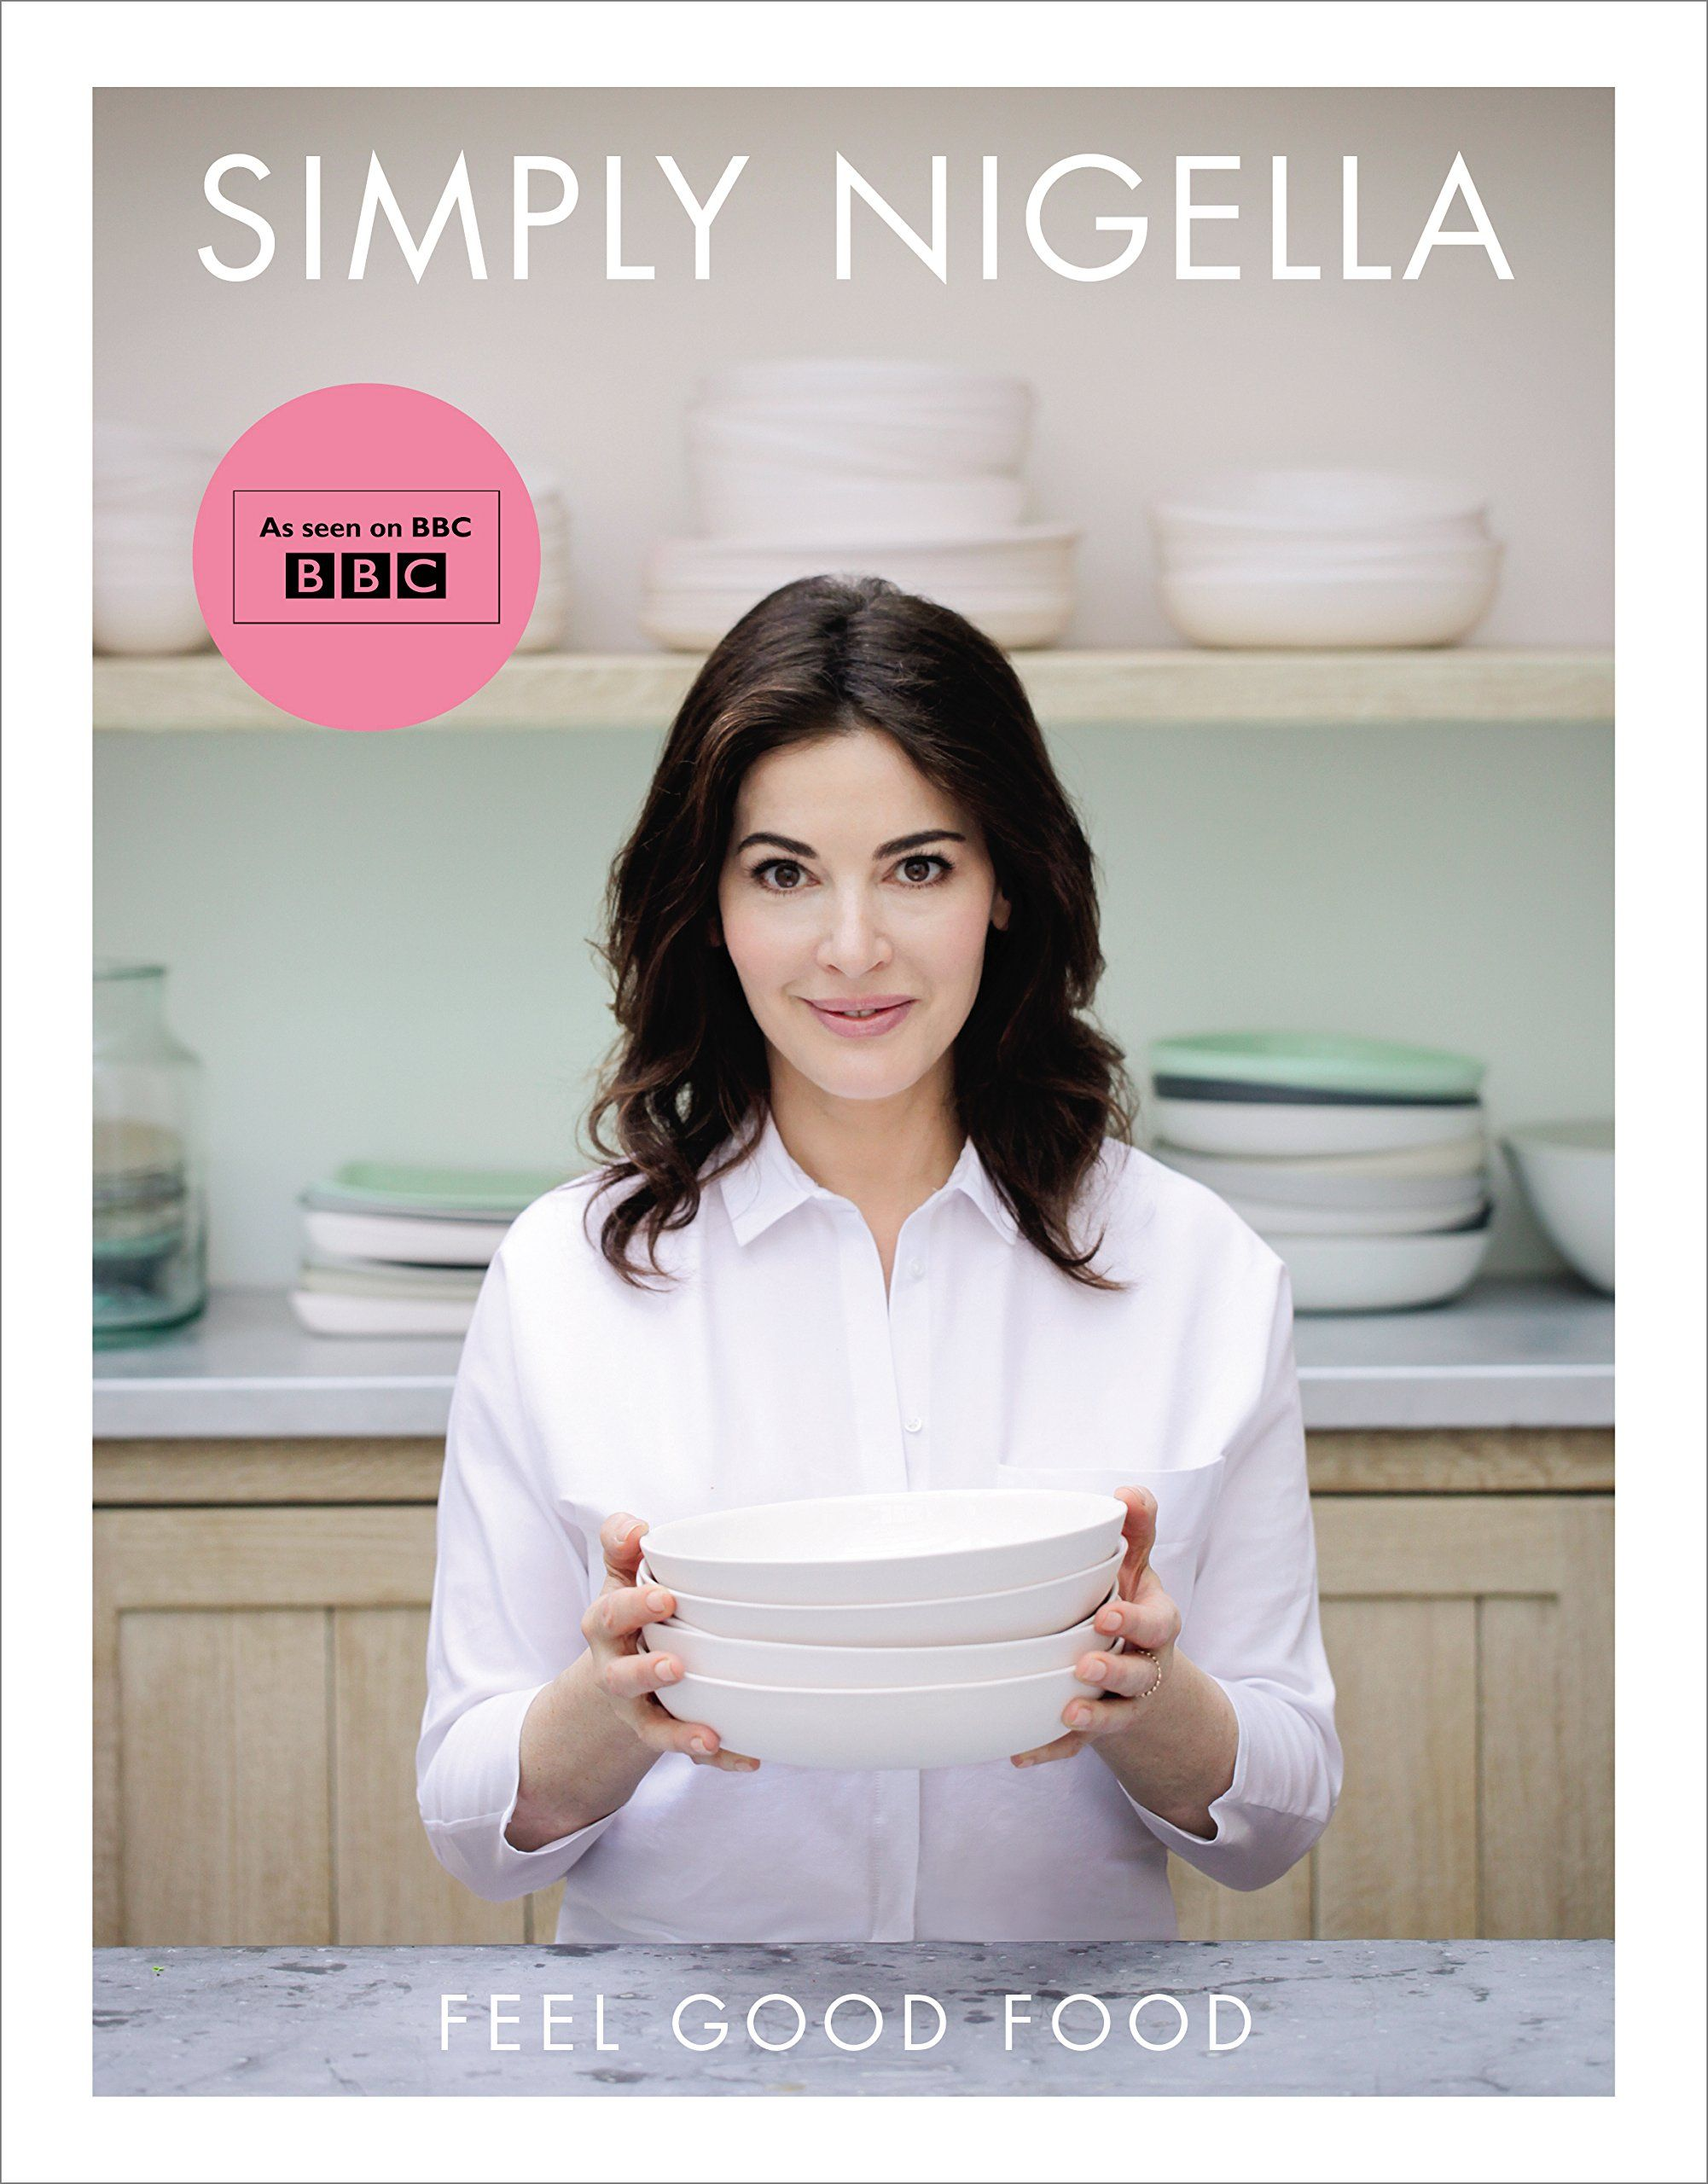 Simply nigella la dieta finita books pinterest nigella simply nigella feel good food by nigella lawson this is the cookbook ive cooked from most this year full of easy delicious quick modern recipes forumfinder Gallery